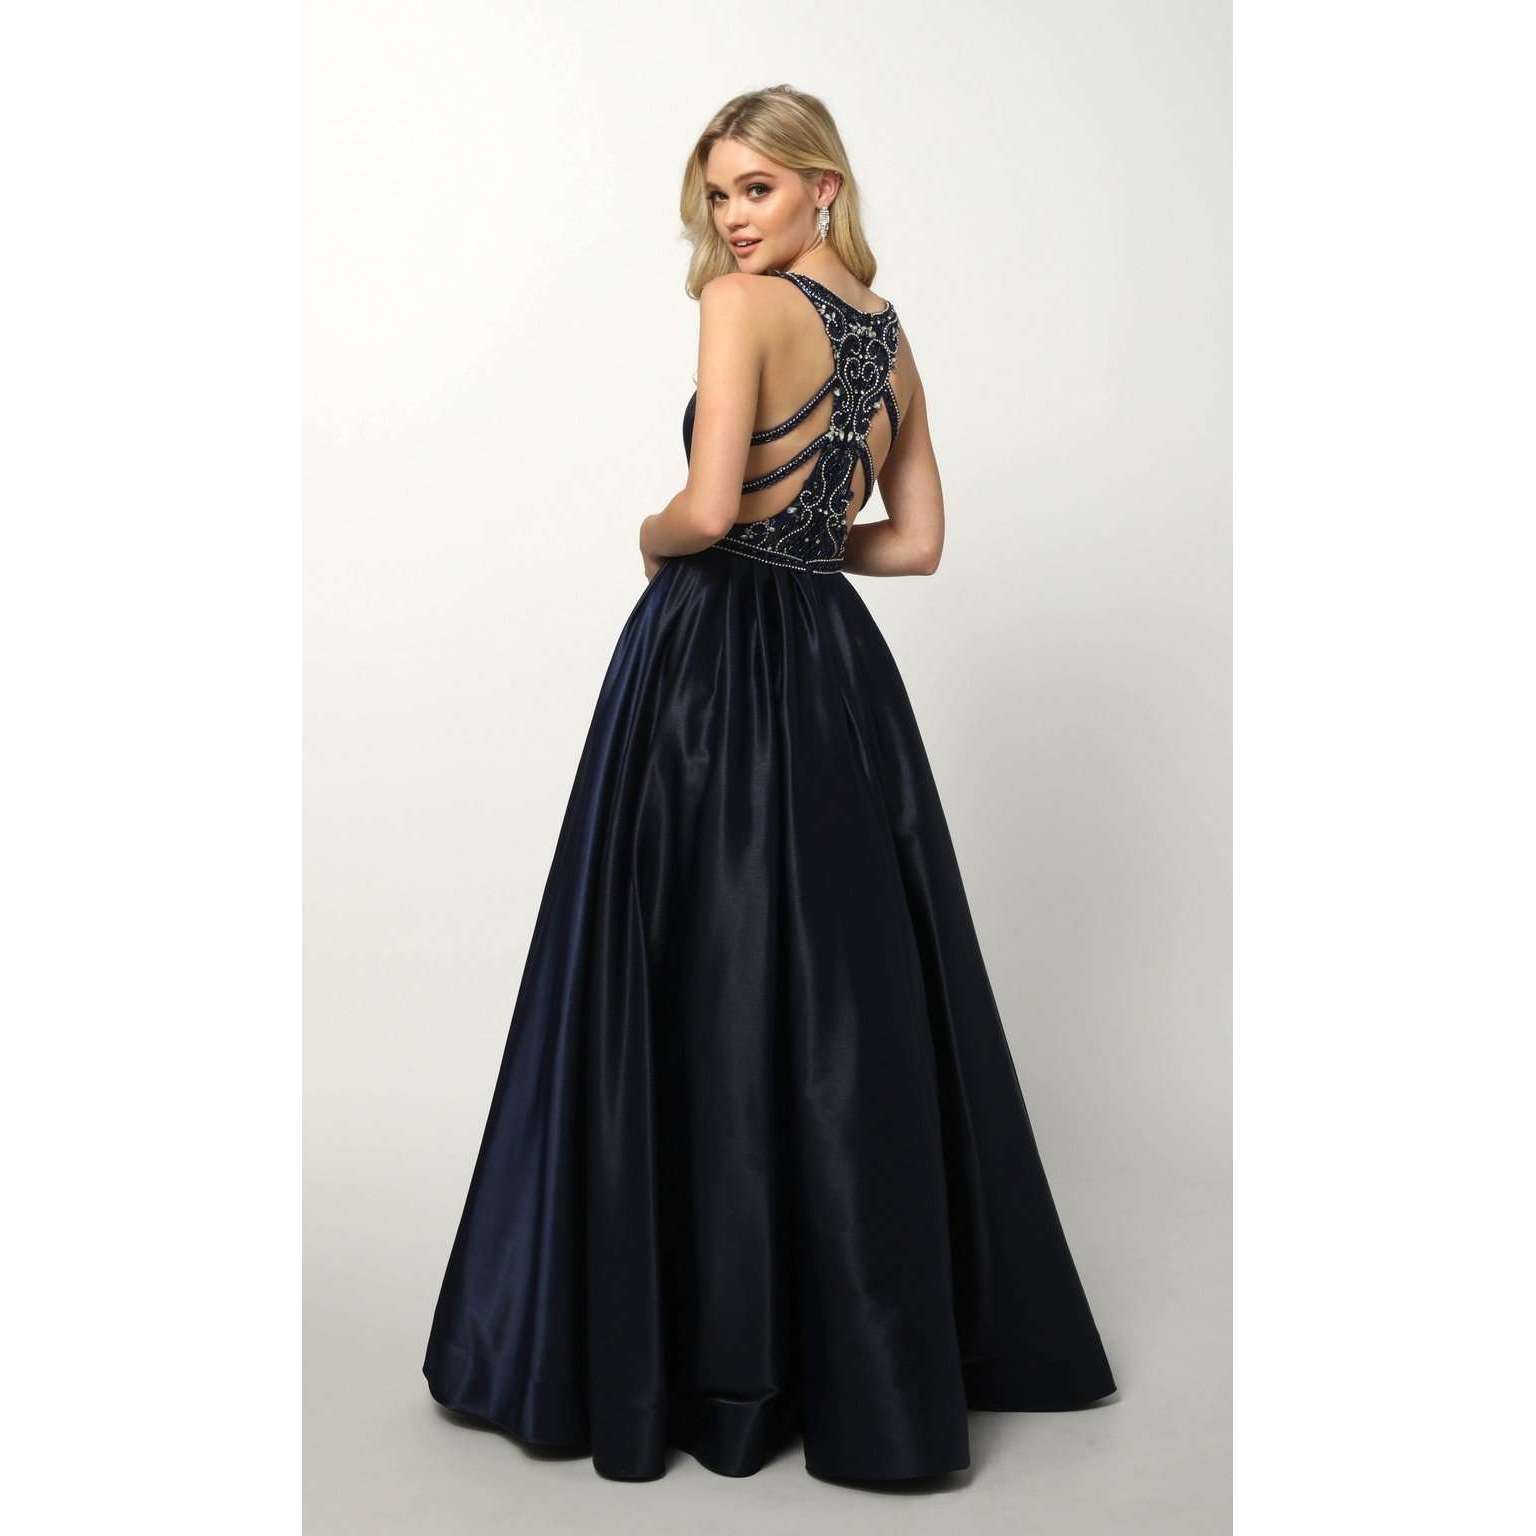 Glitter Satin Deep V Neck and Criss Cross Back Prom Gown 690 - Julietdresses